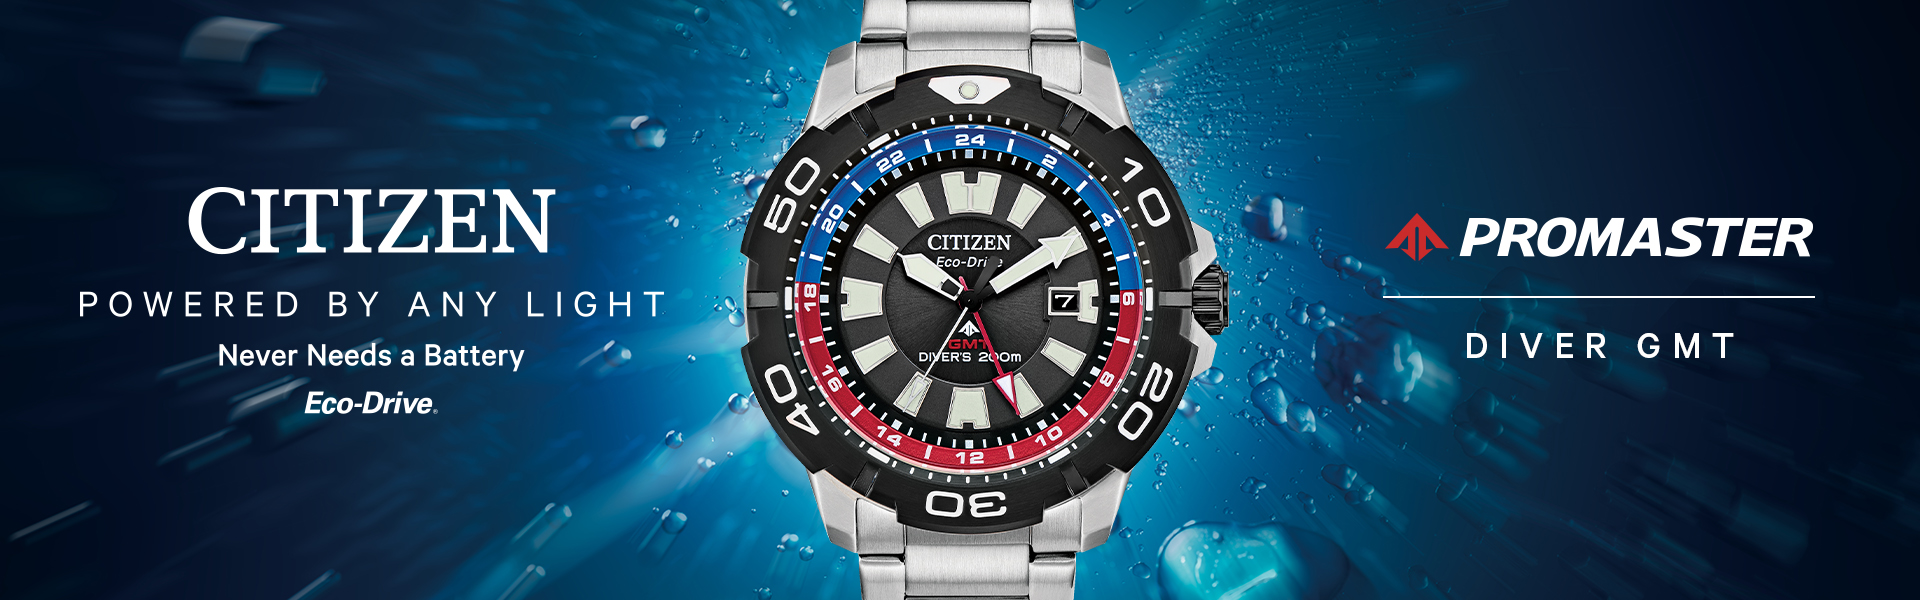 Markor Jewellers Citizen